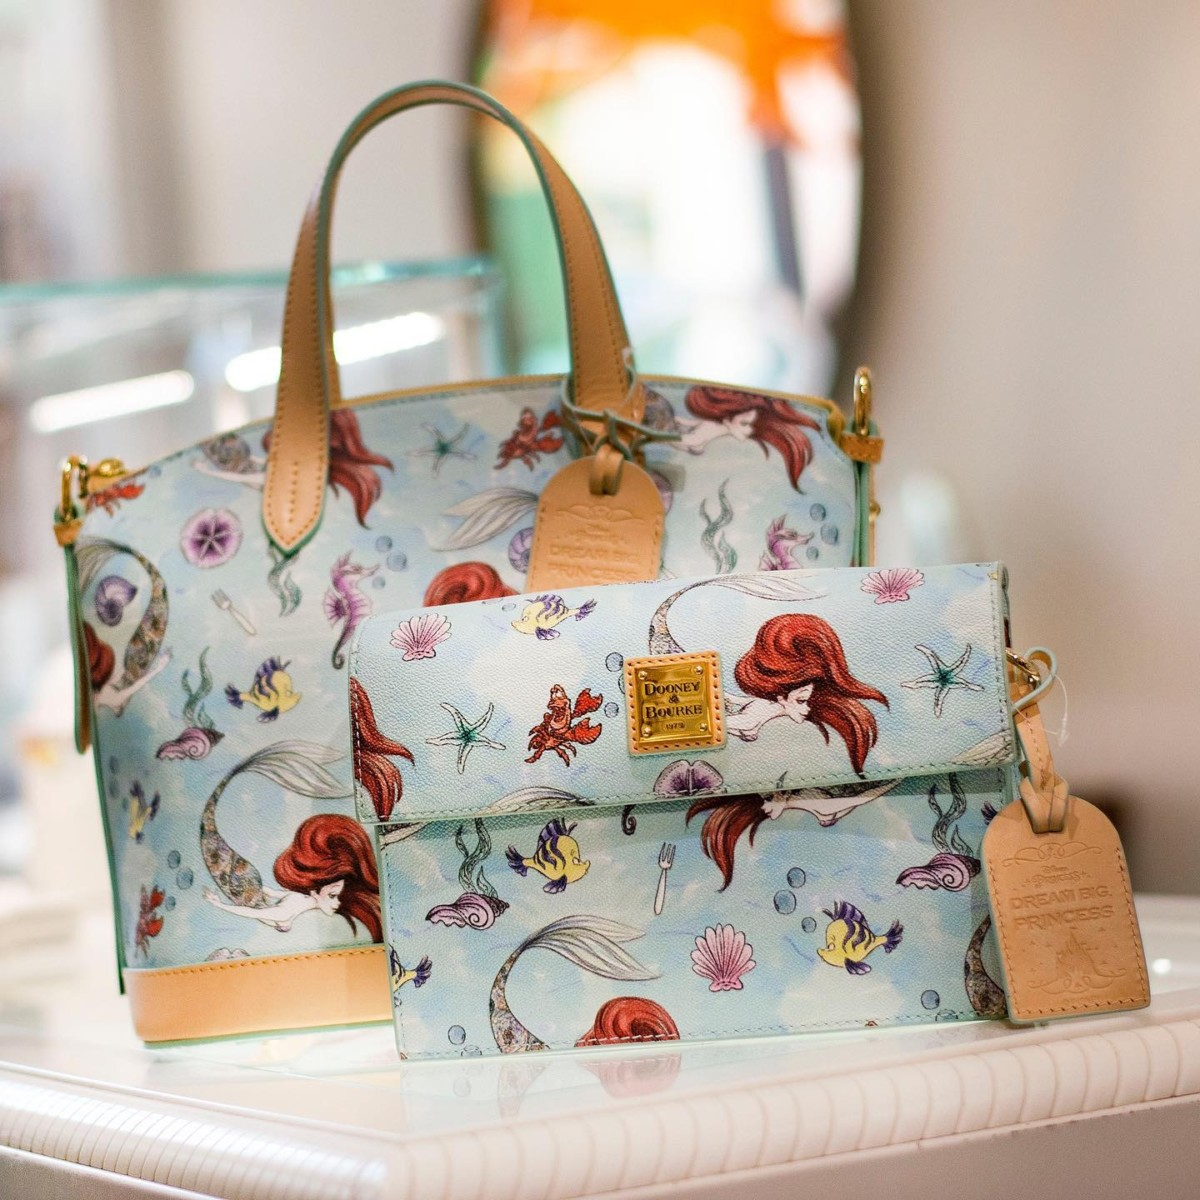 New Ariel Dooney & Bourke Collection Coming this Weekend #disneysprings 2